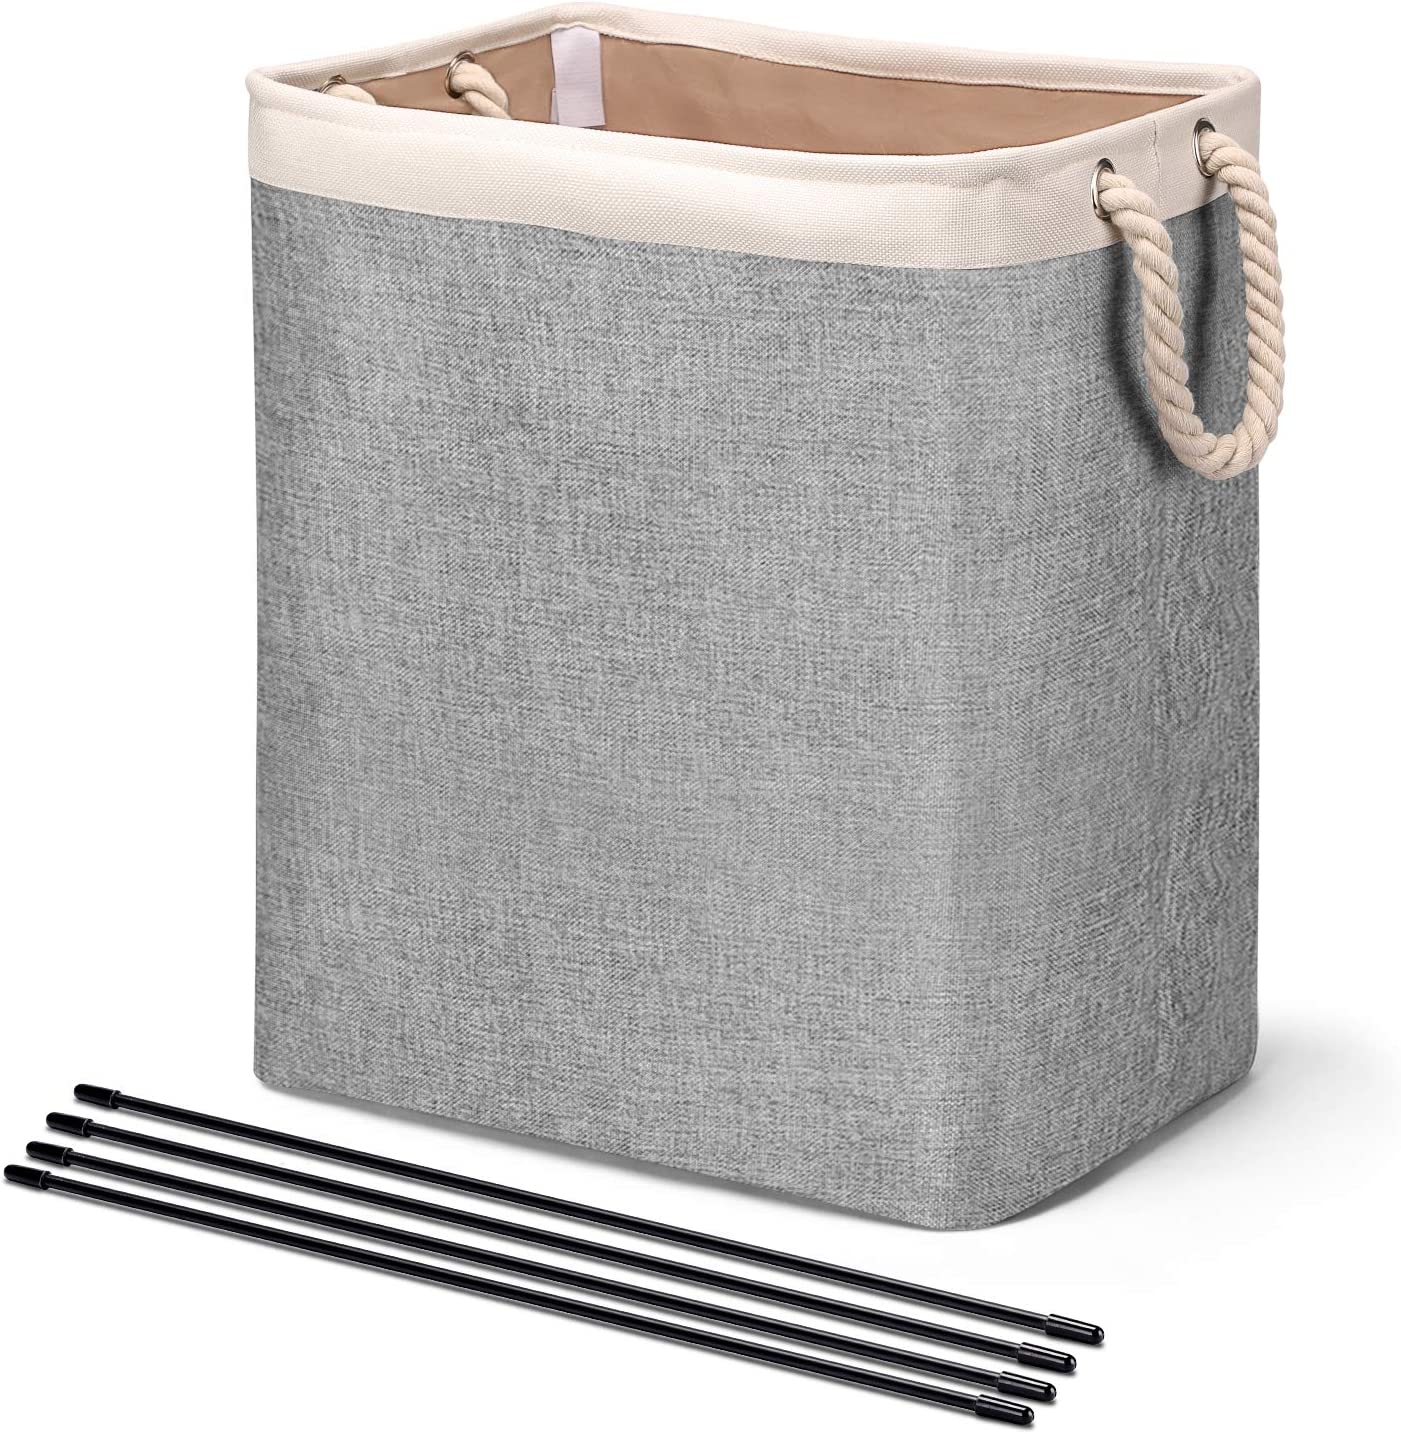 HOUSE DAY Laundry Basket with Handles Linen Laundry Hampers for Laundry Storage Baskets Built-in Lining with Detachable Brackets Well-Holding Foldable Laundry Bags for Clothing Organization (Grey)